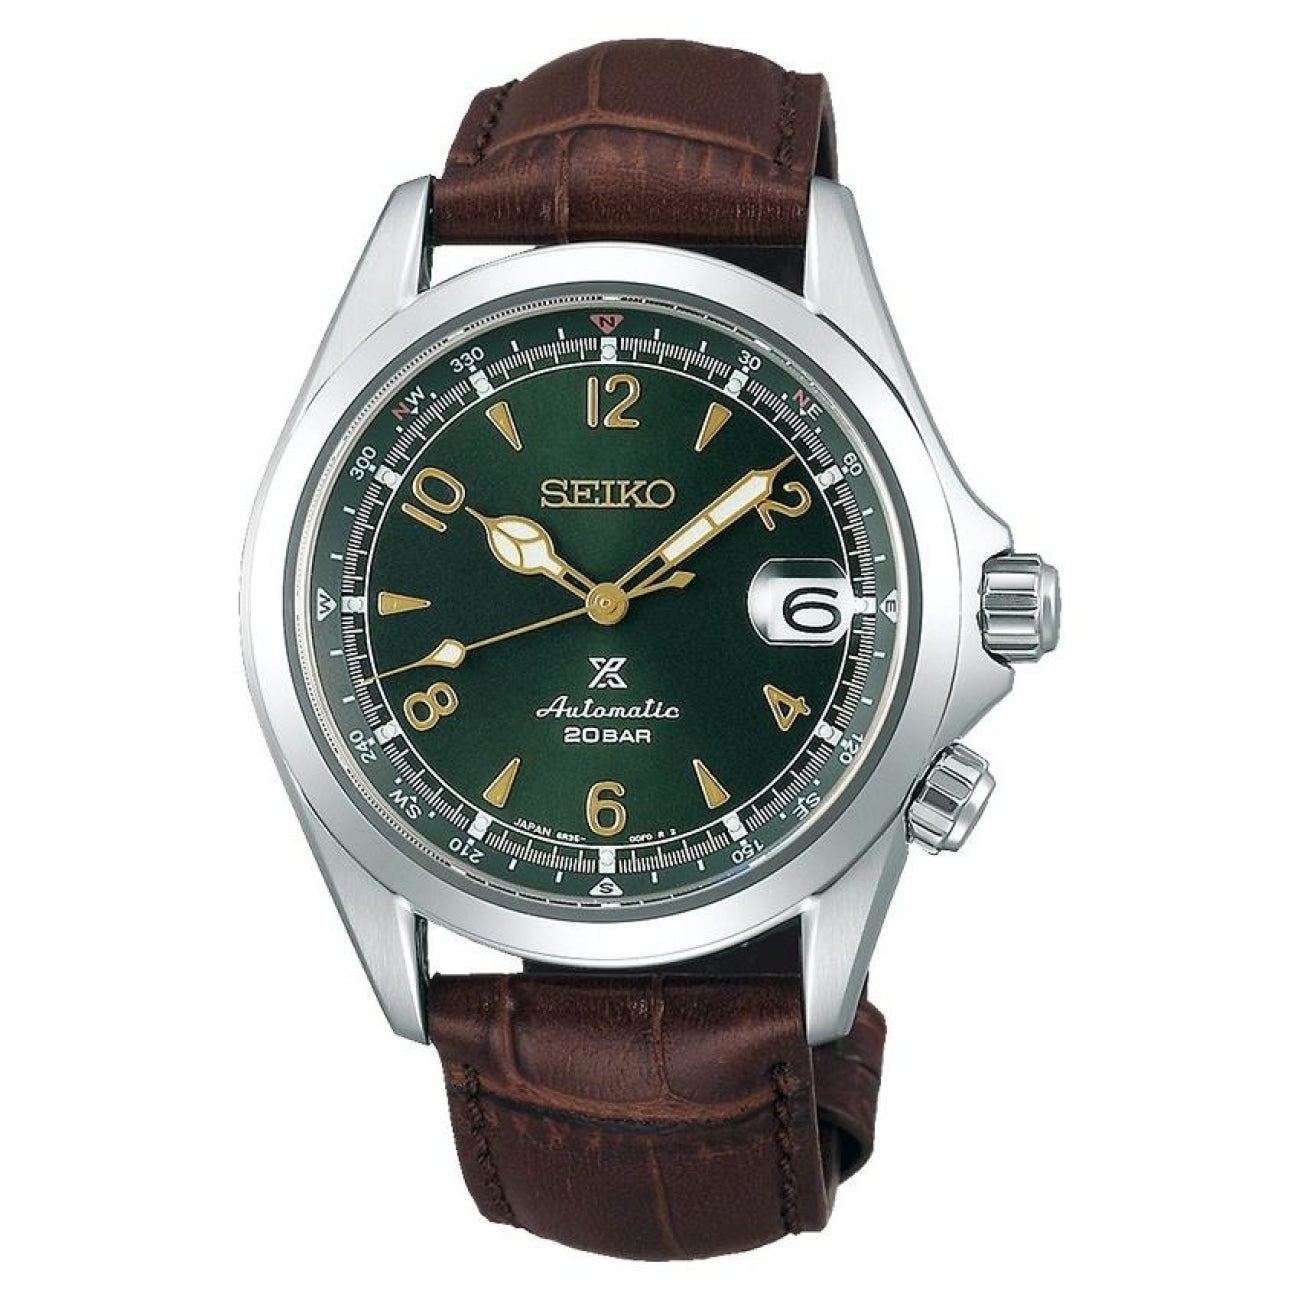 Seiko Watches - Seiko Prospex Alpinist SPB121 | Manfredi Jewels